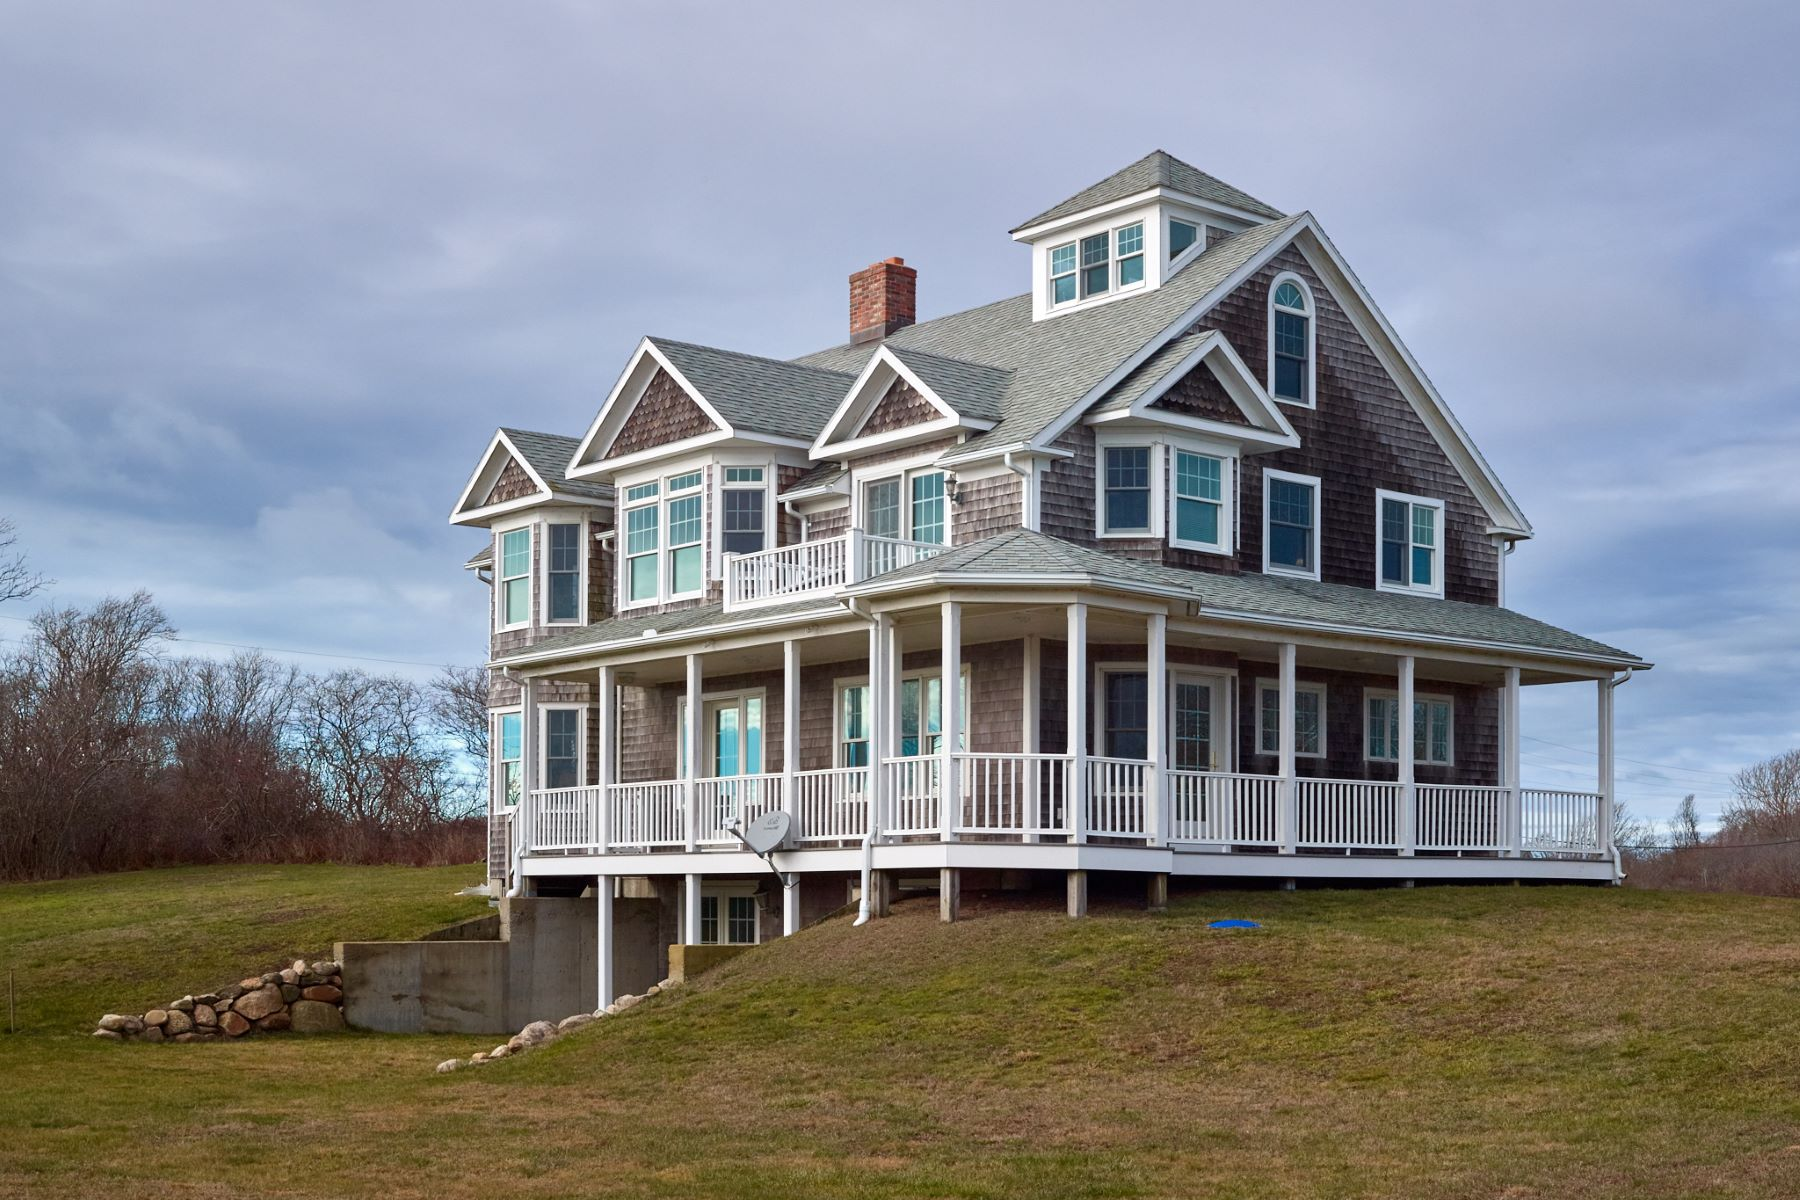 Single Family Home for Sale at Mohegan Cottage 1671 Mohegan Trail Block Island, Rhode Island 02807 United States